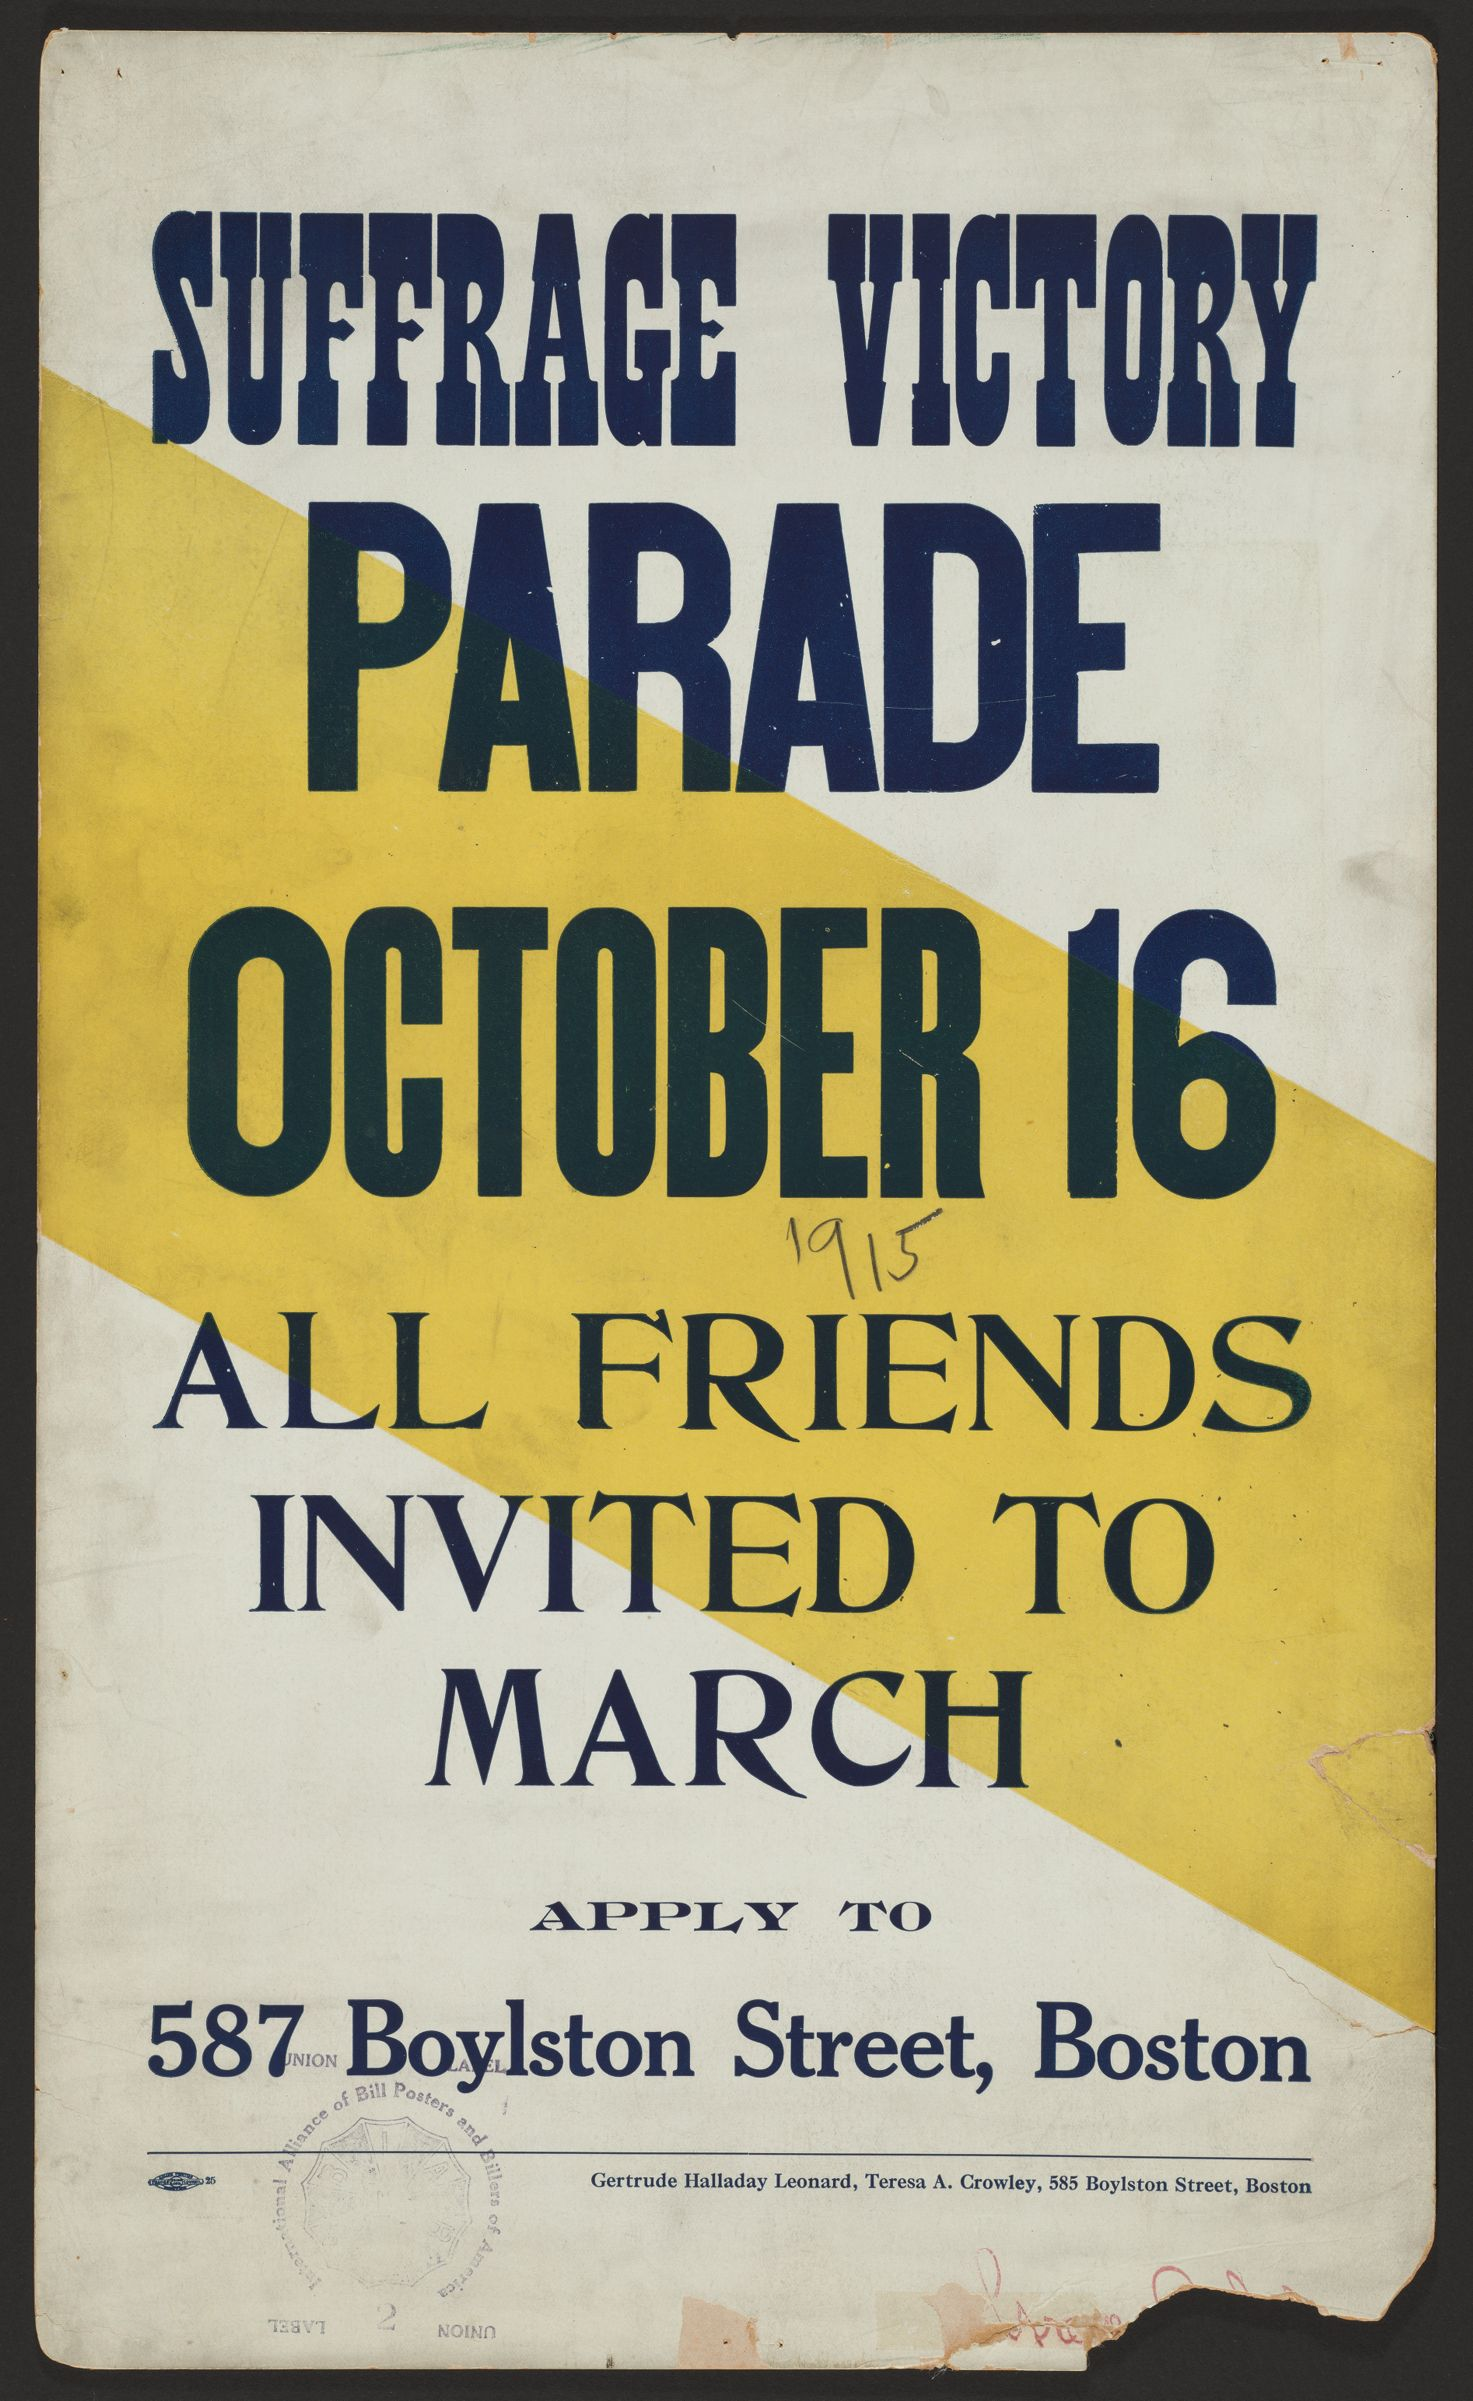 Suffrage victory parade, all friends invited to to march, October 16, 1915, Boston